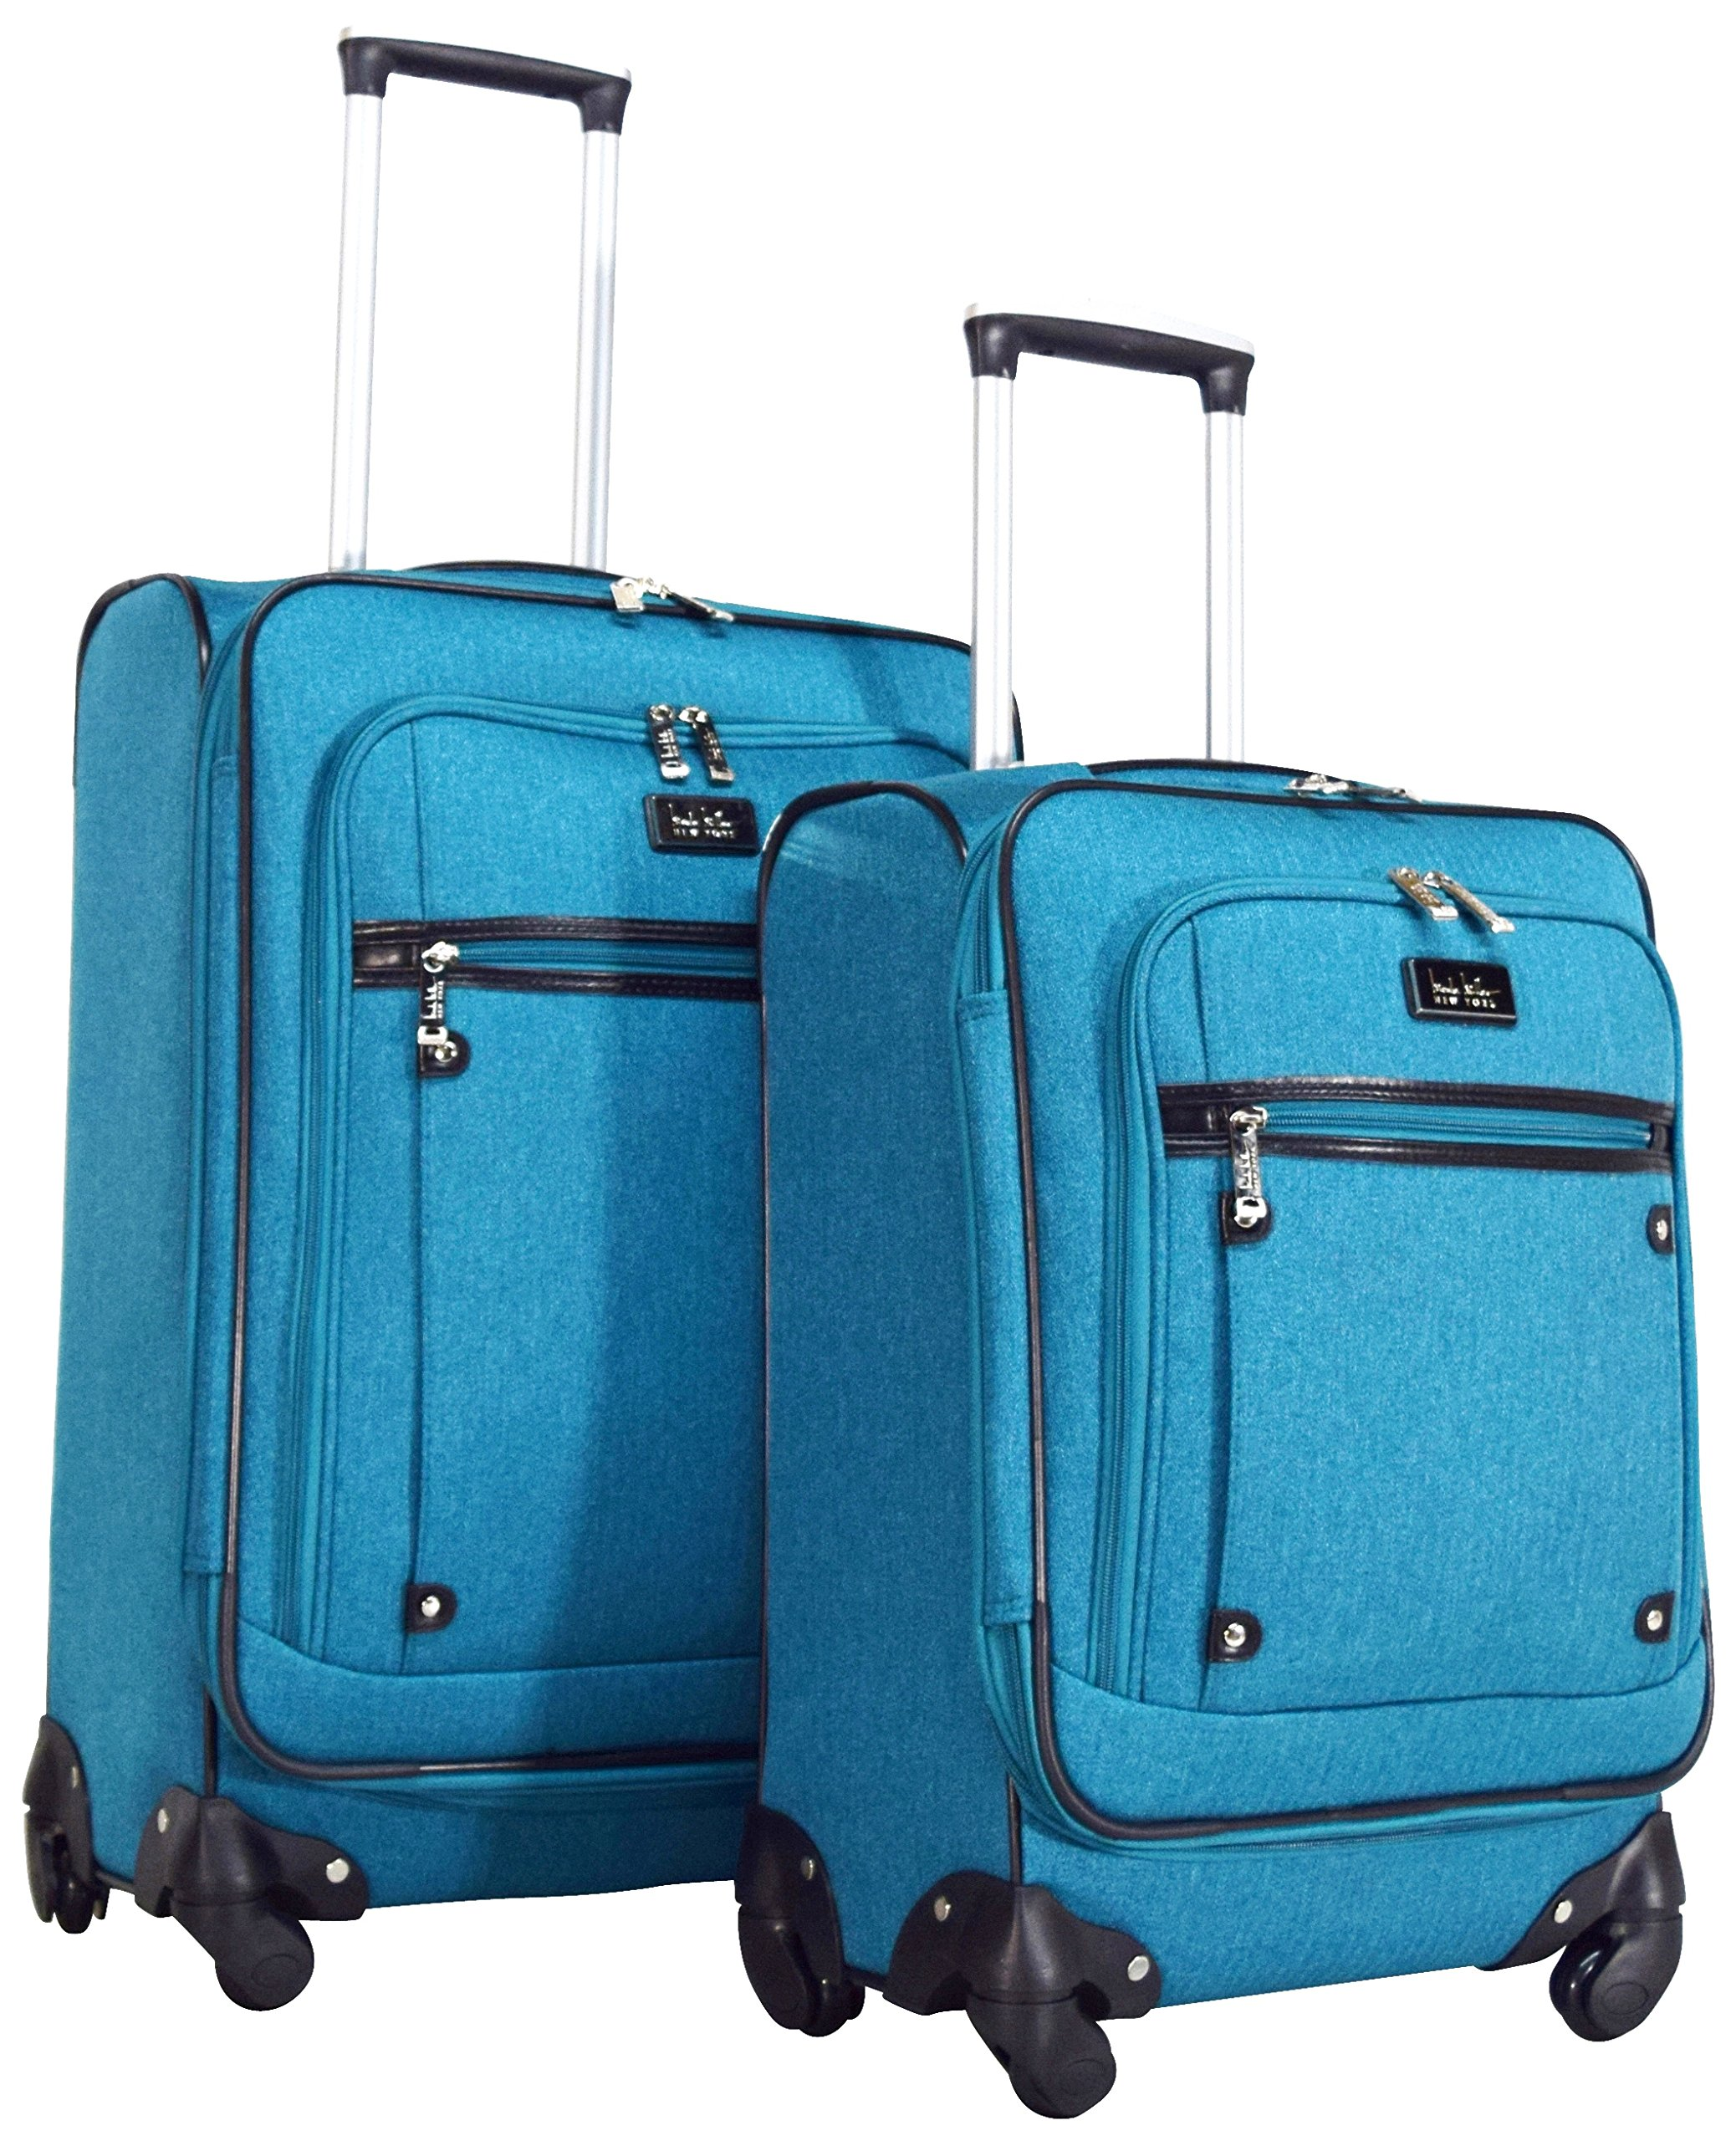 Nicole Miller New York Taylor 2-Piece Luggage Set: 24'' and 20'' Spinners (Teal)